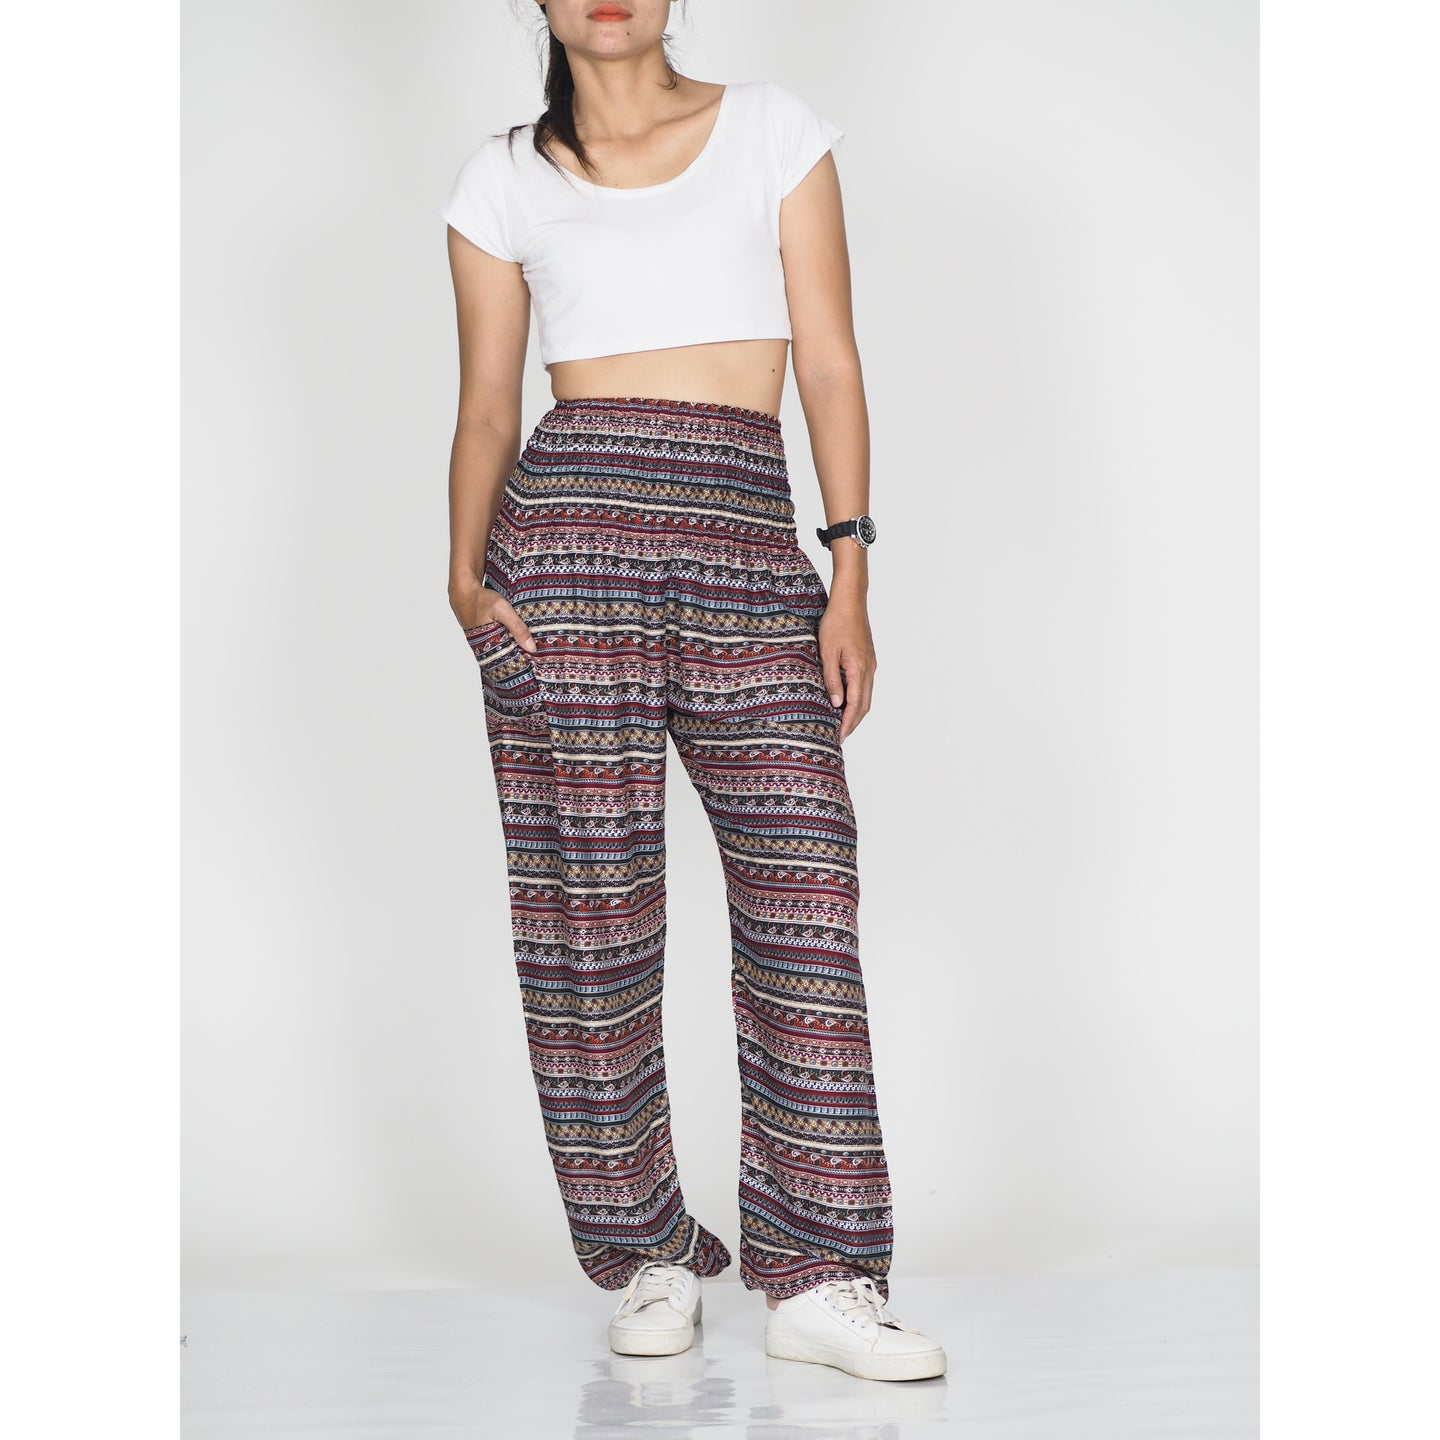 Colorful Stripes 6 women harem pants in Dark Brown PP0004 020006 05